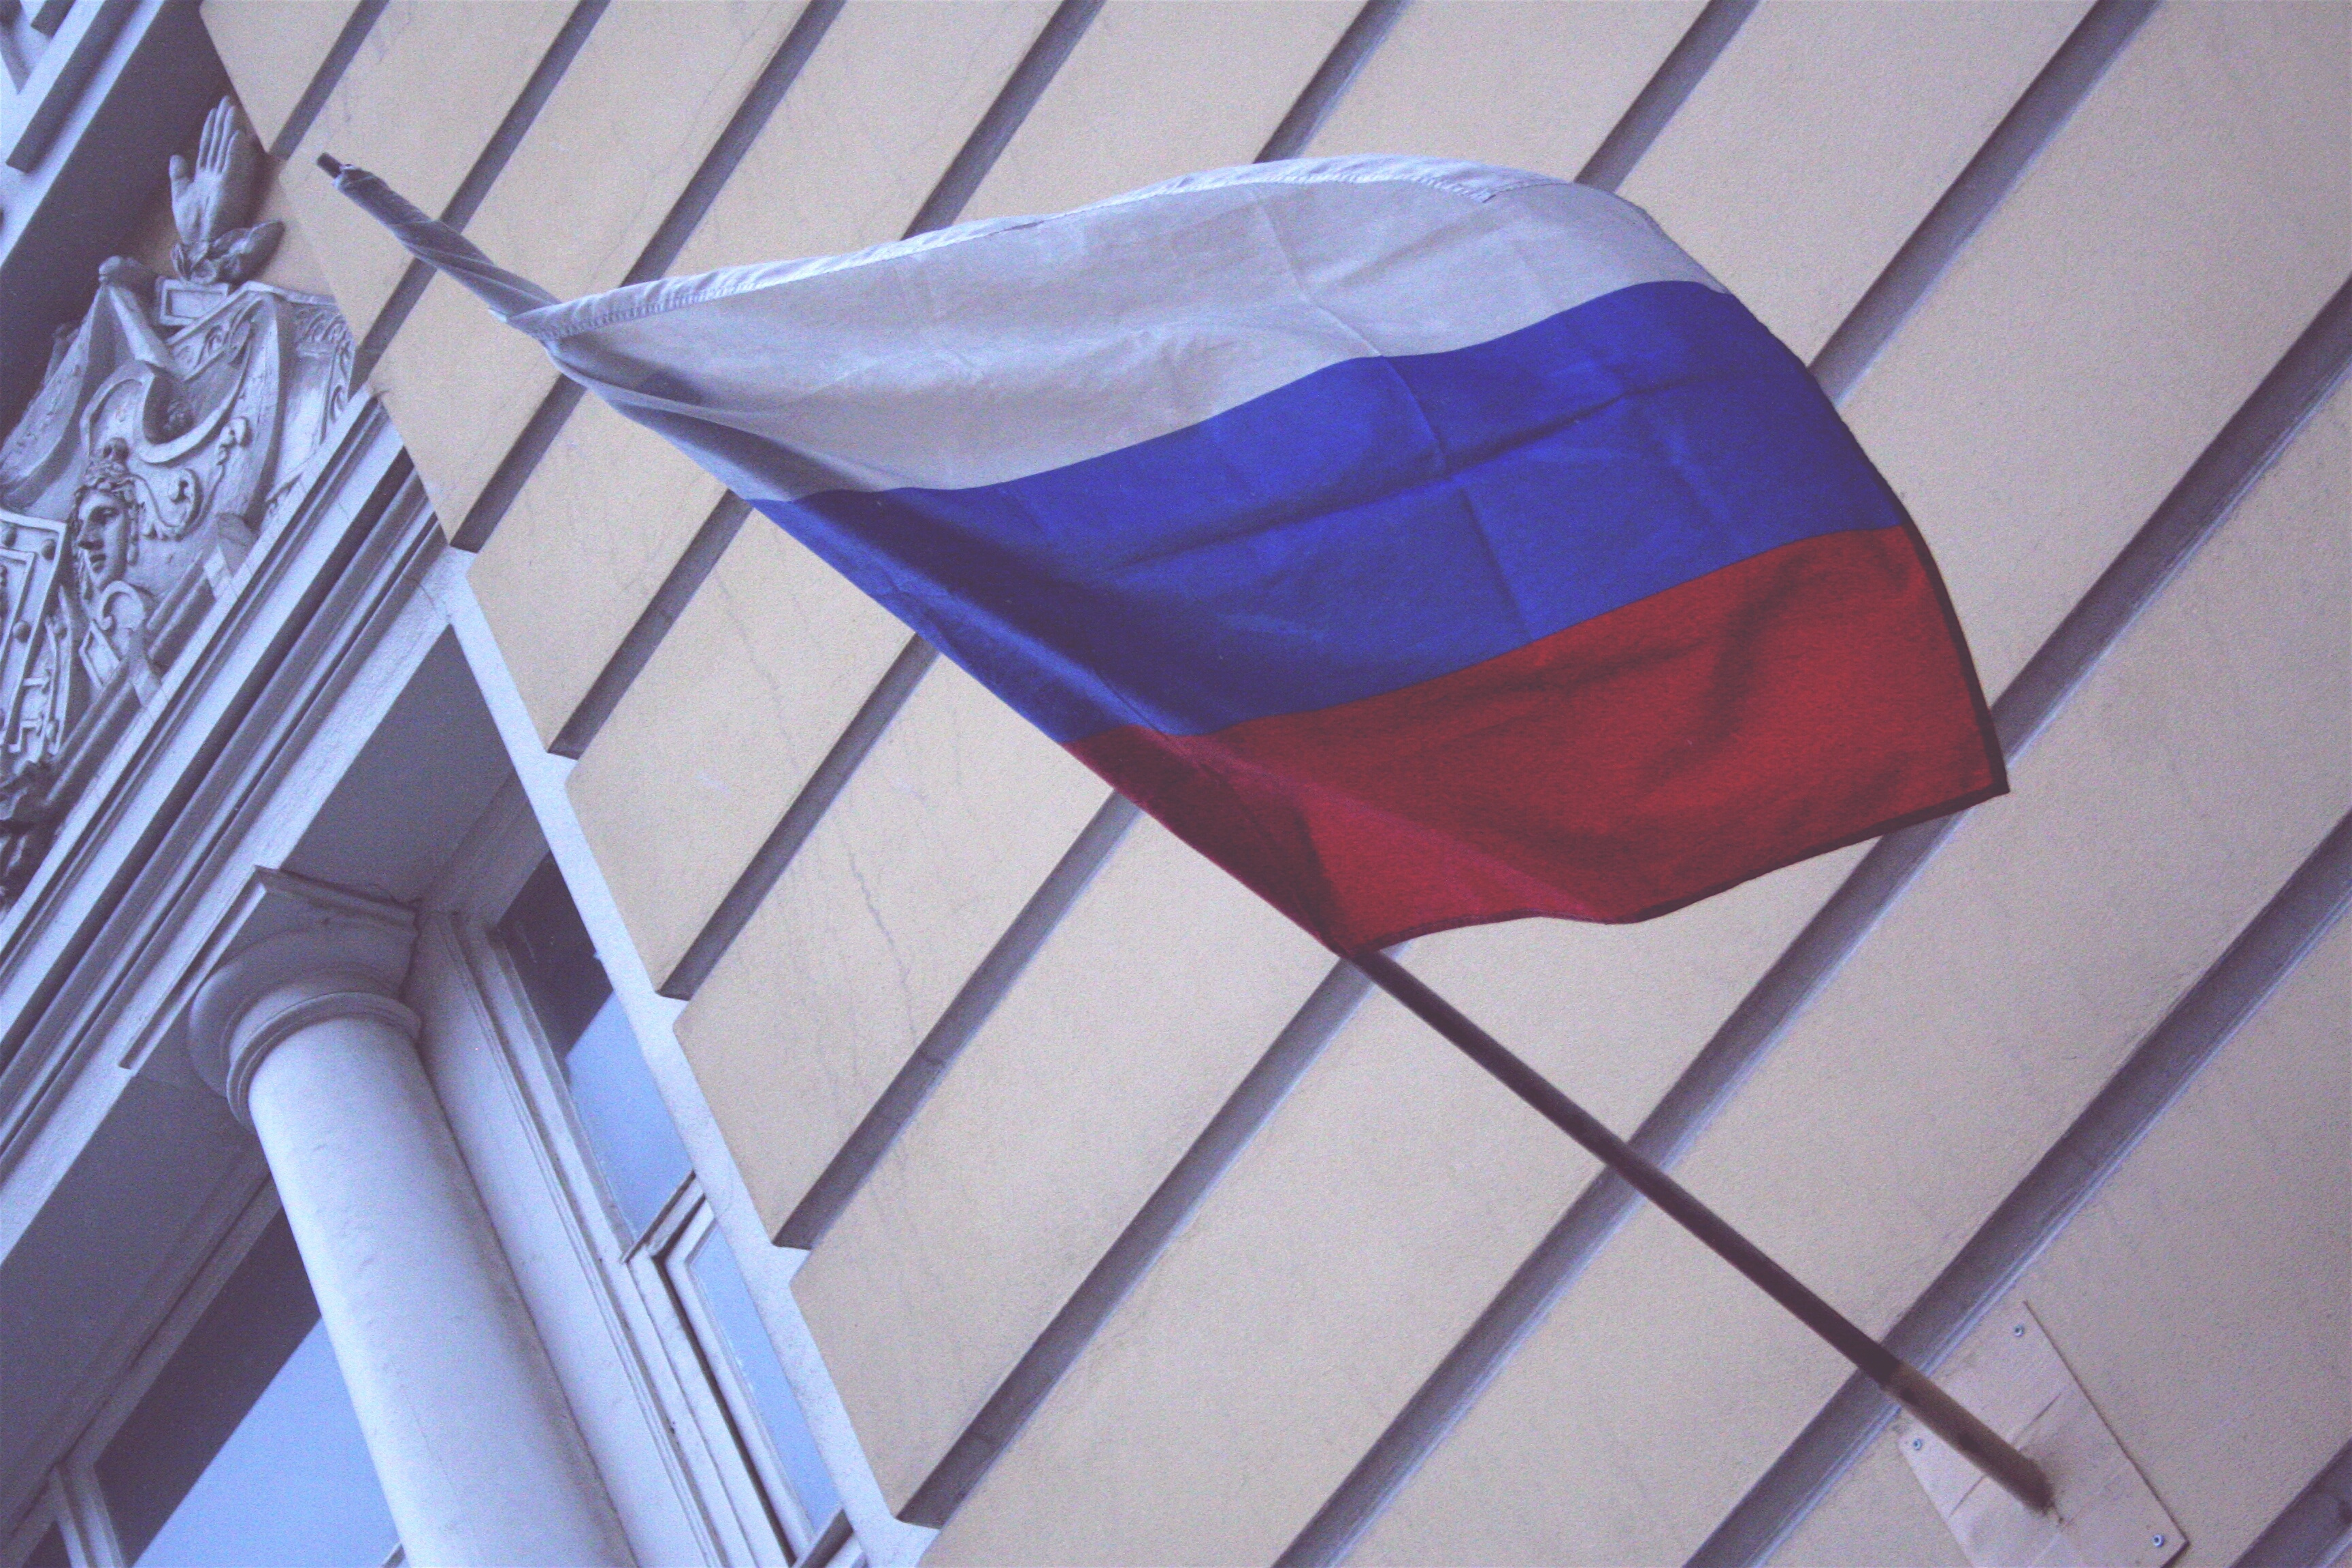 Russian Federation bans Google's IP addresses to block Telegram messenger